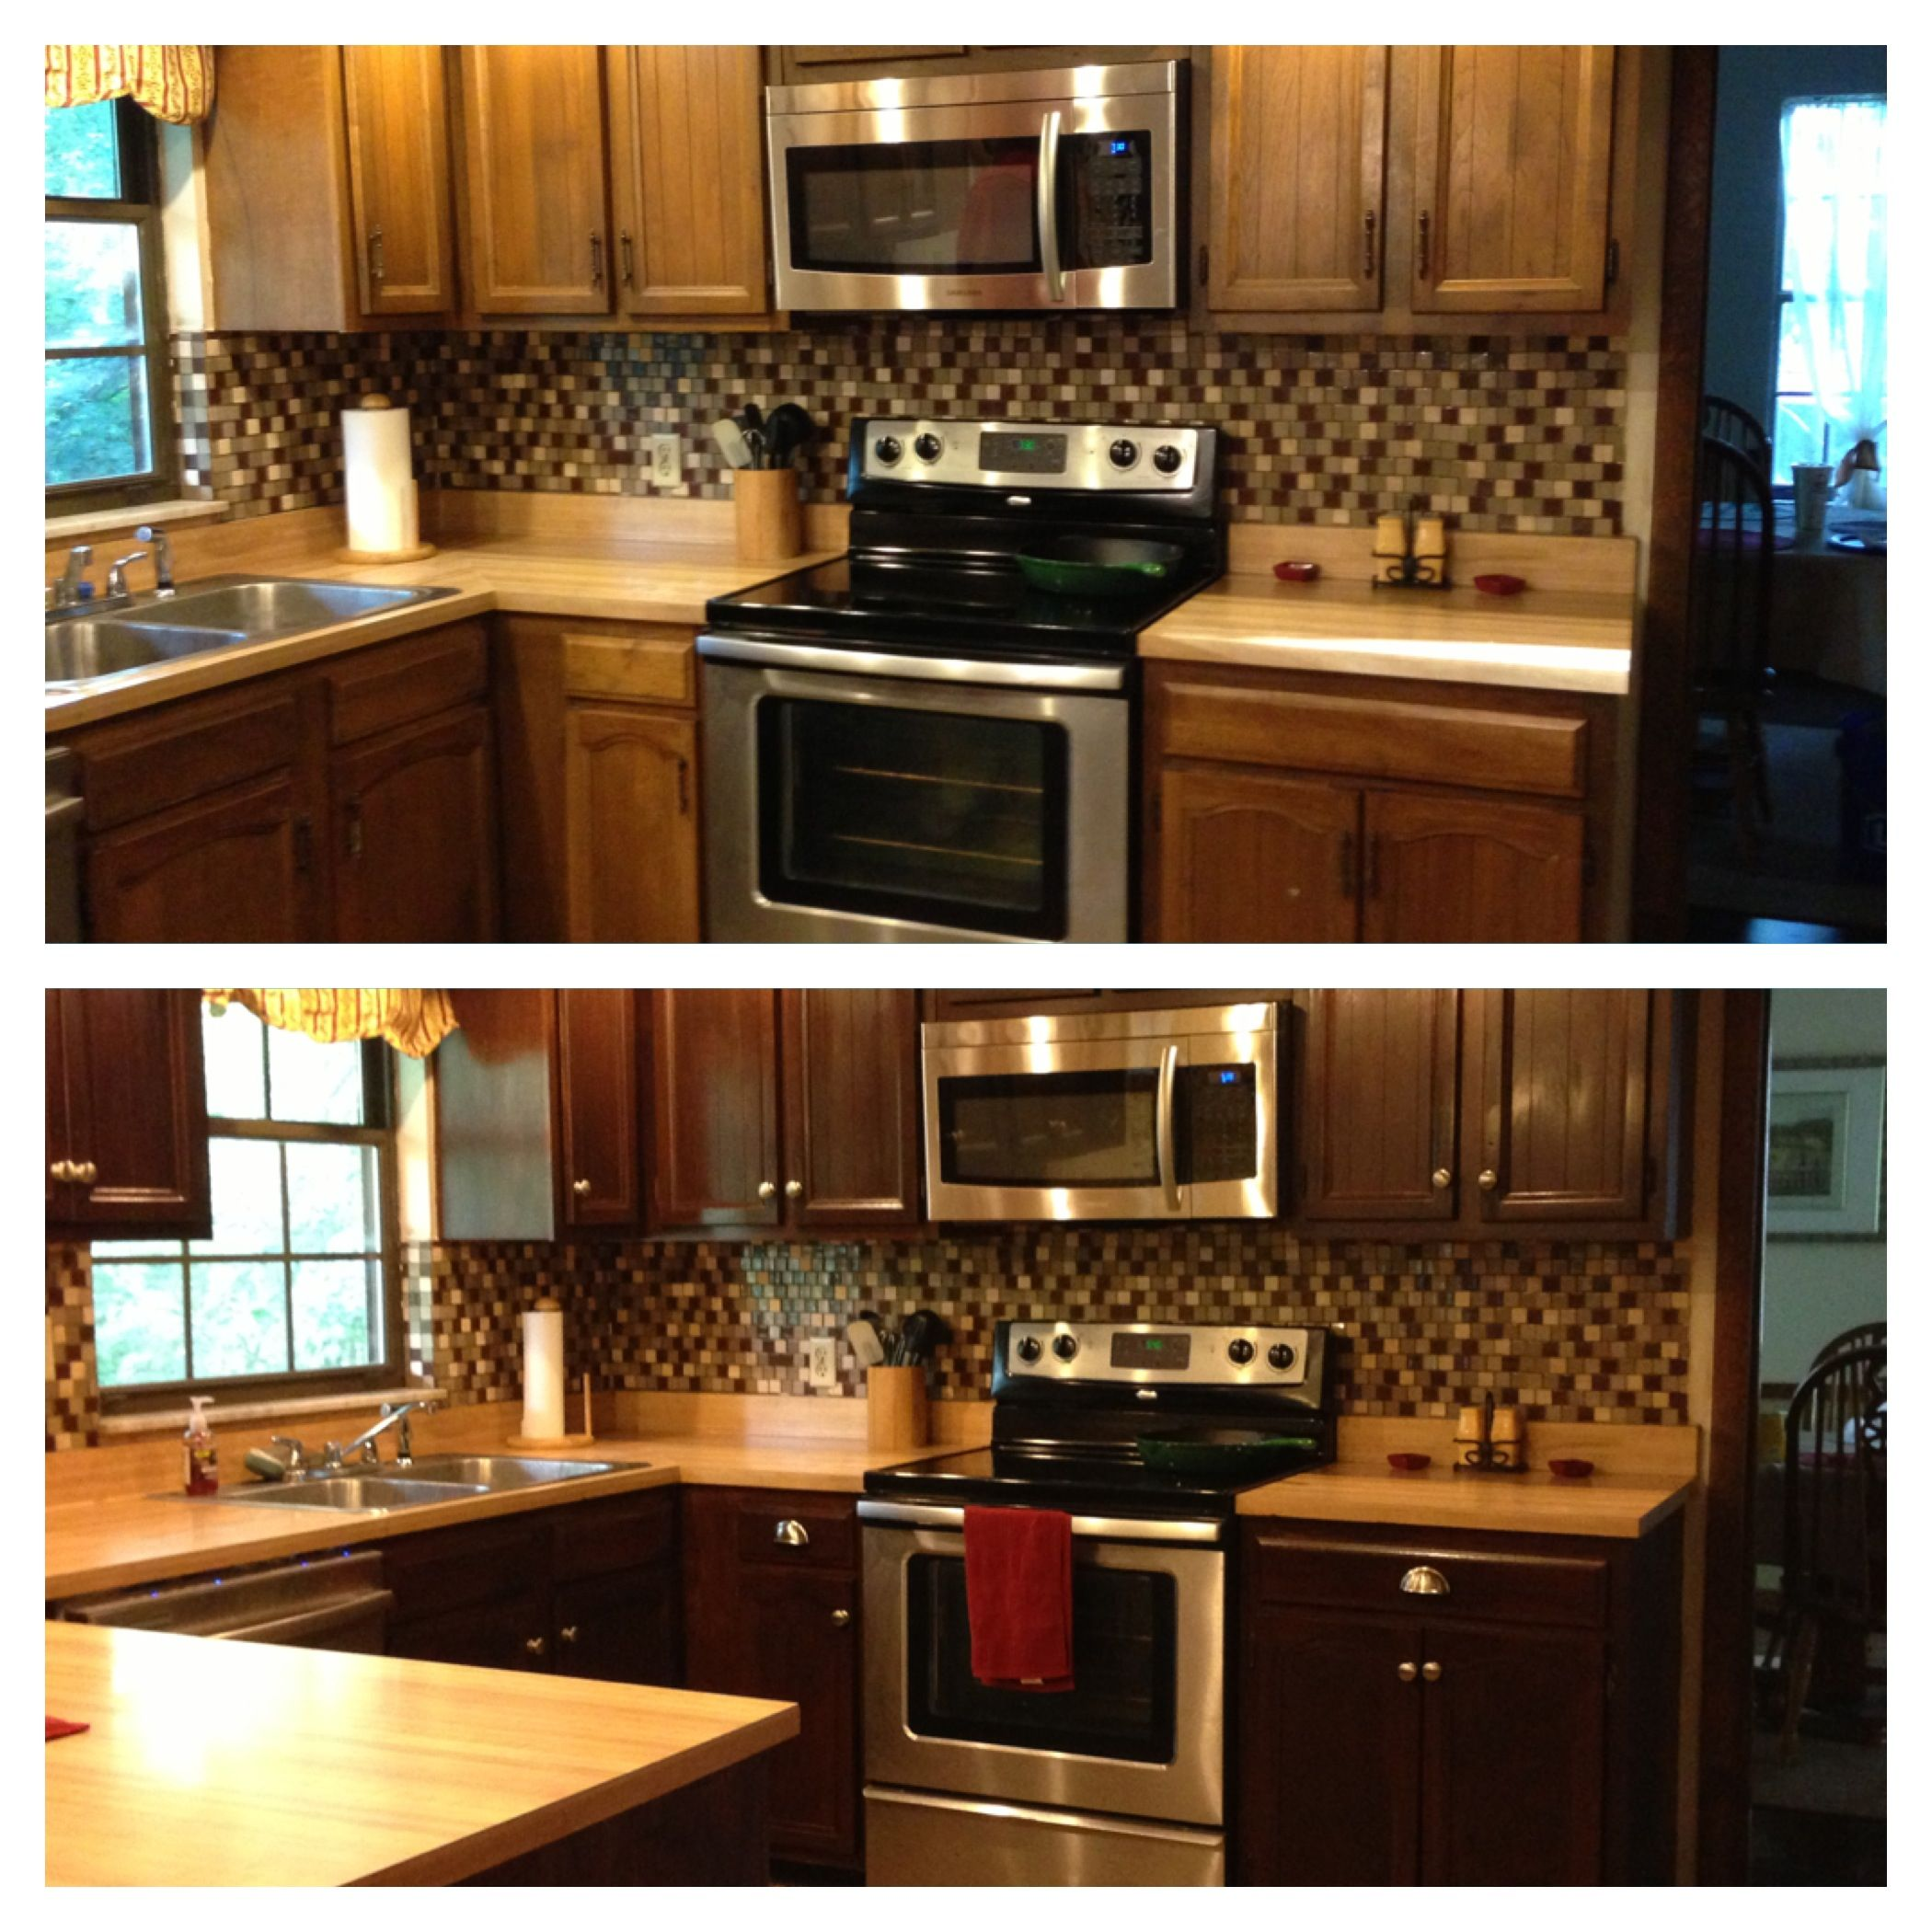 Diy Gel Stain Kitchen Cabinets Black With The Faux: What A Difference A Can Of Gel Stain And New Hardware Make